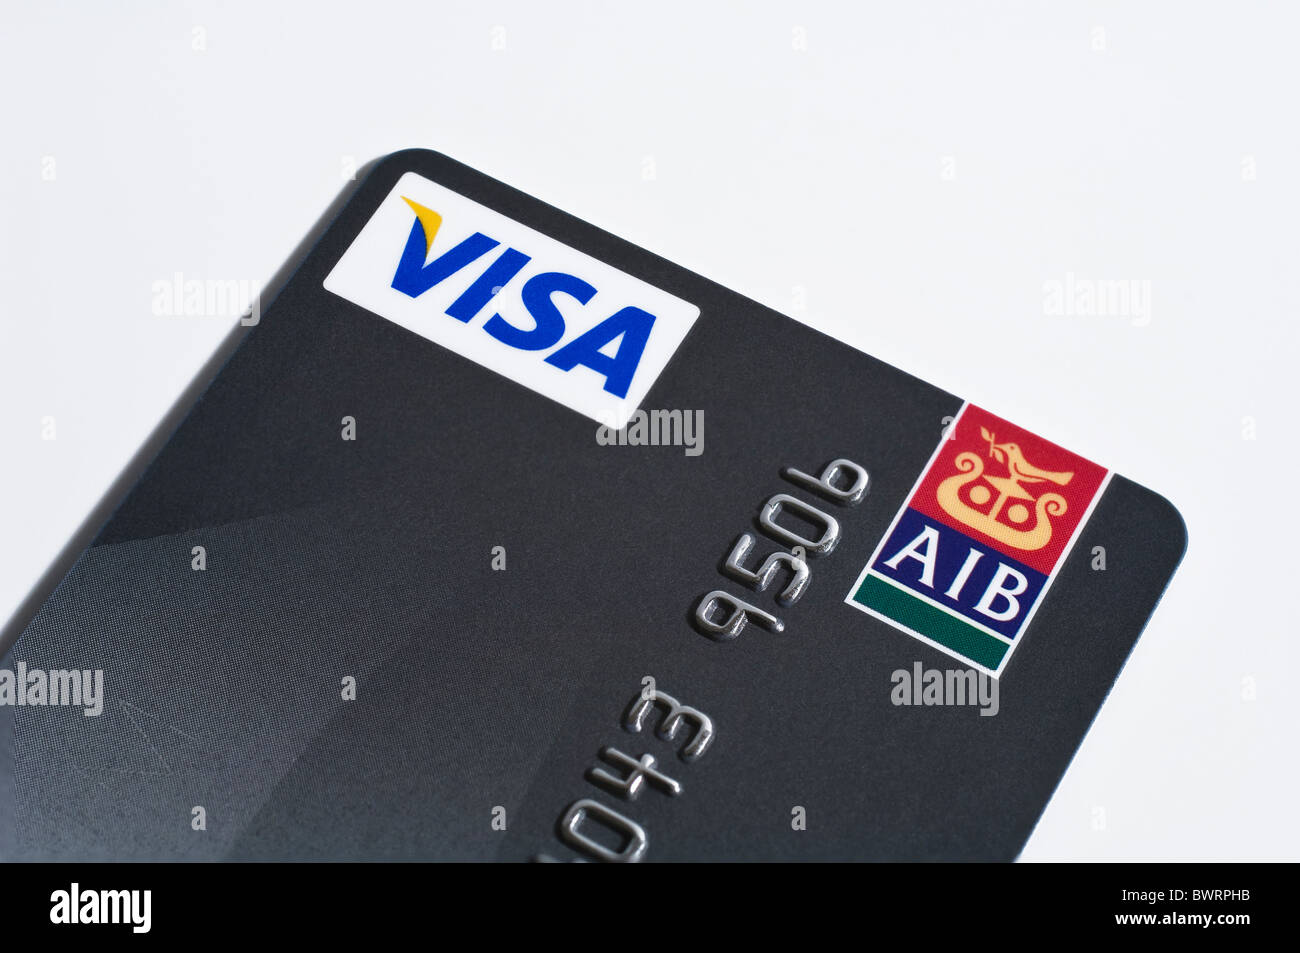 Aib Business Credit Card Services Image collections - Card Design ...